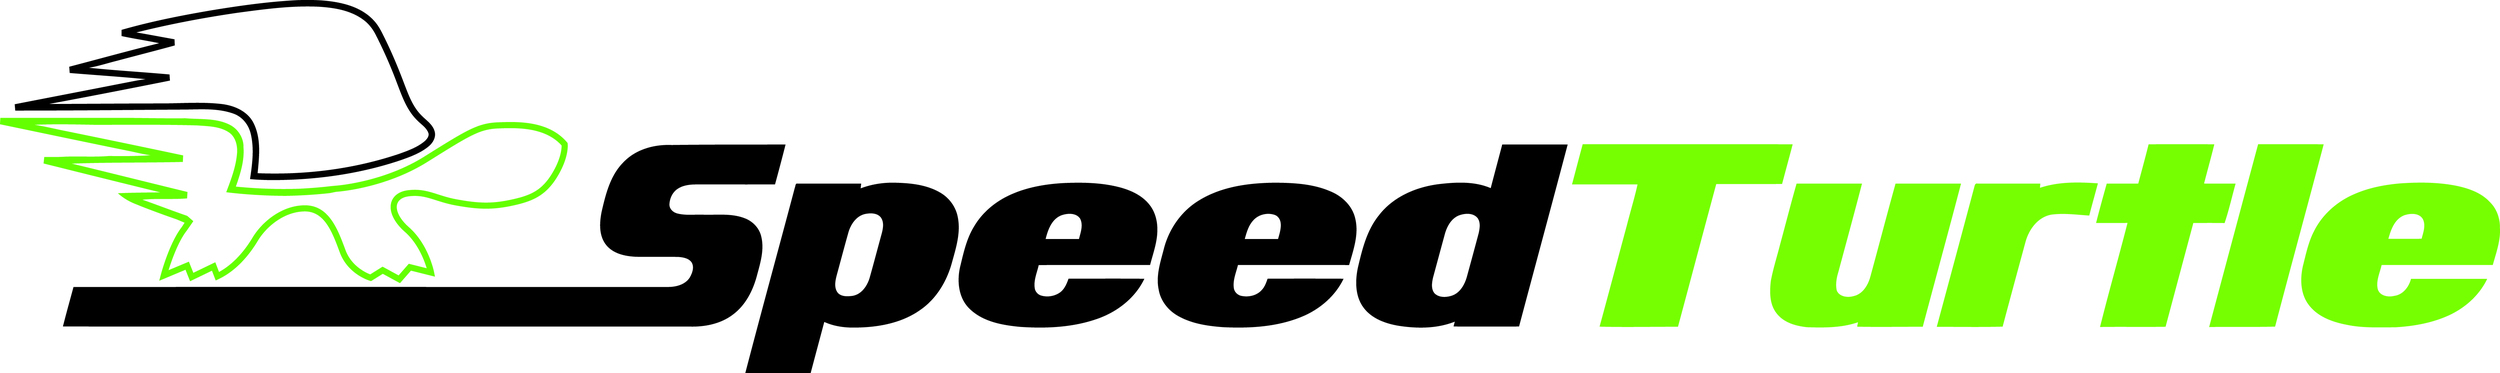 SpeedTurtleLogo.jpg